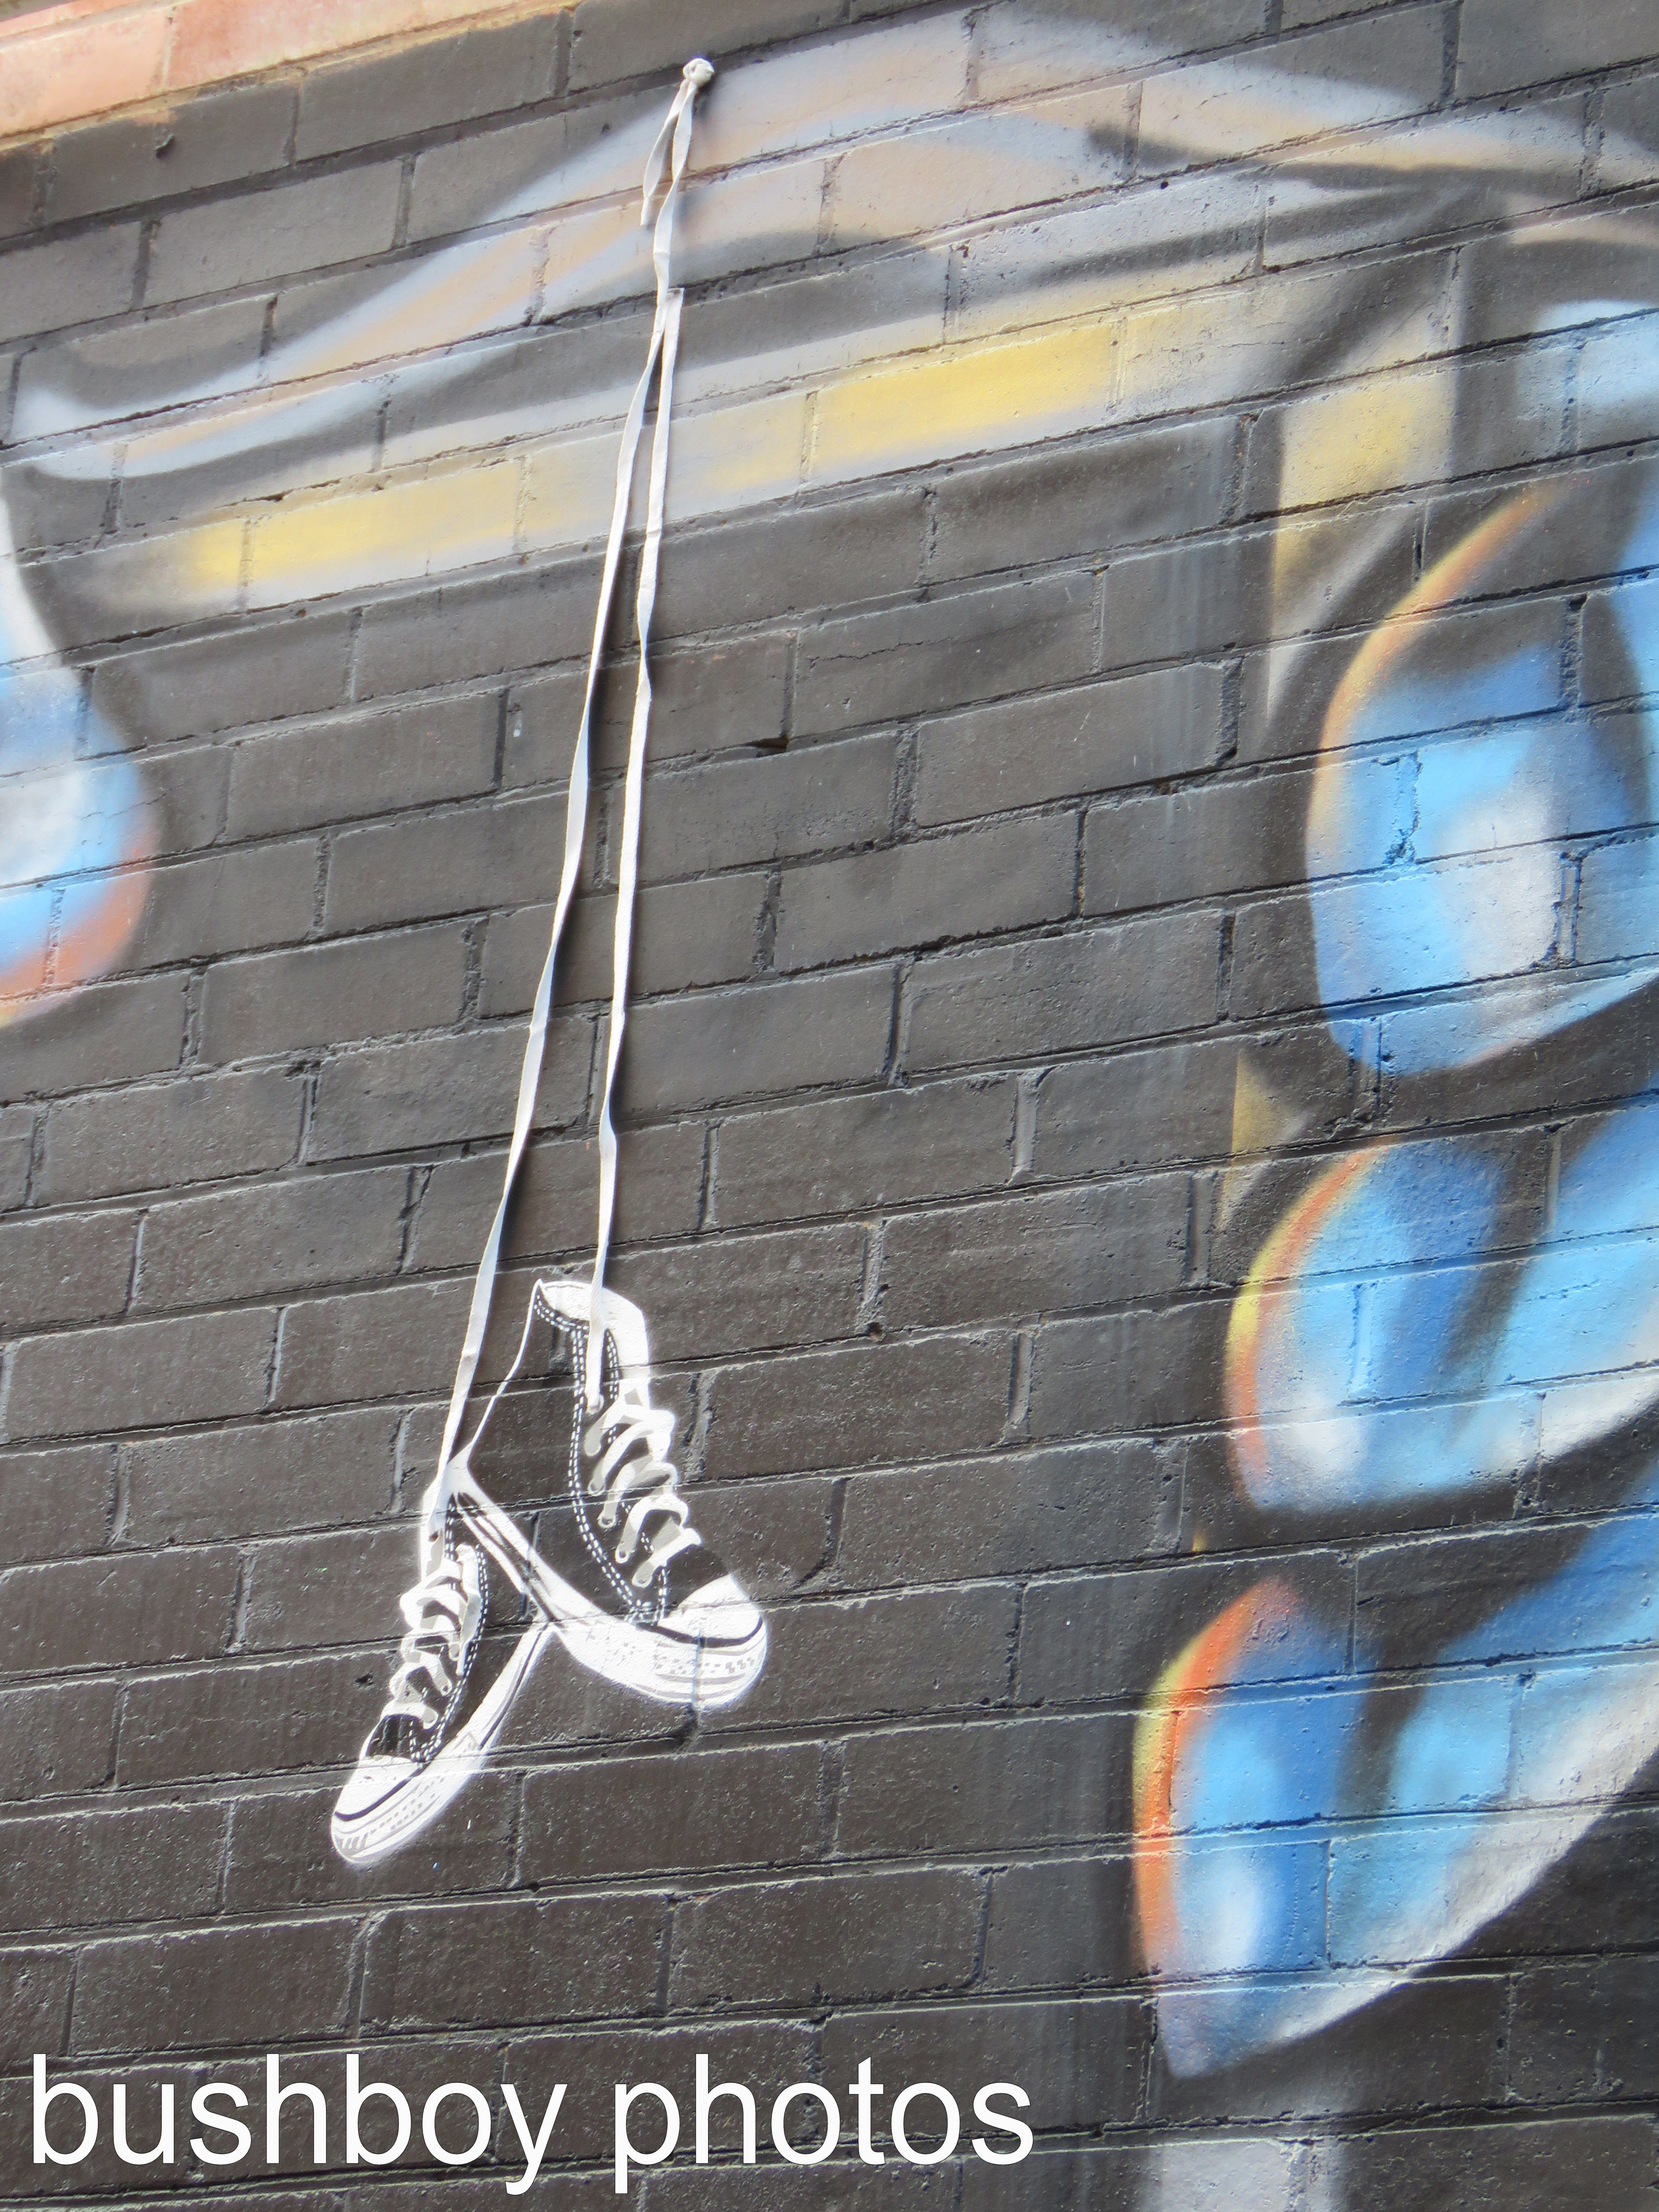 graffiti_shoes_lismore_named_march 2017